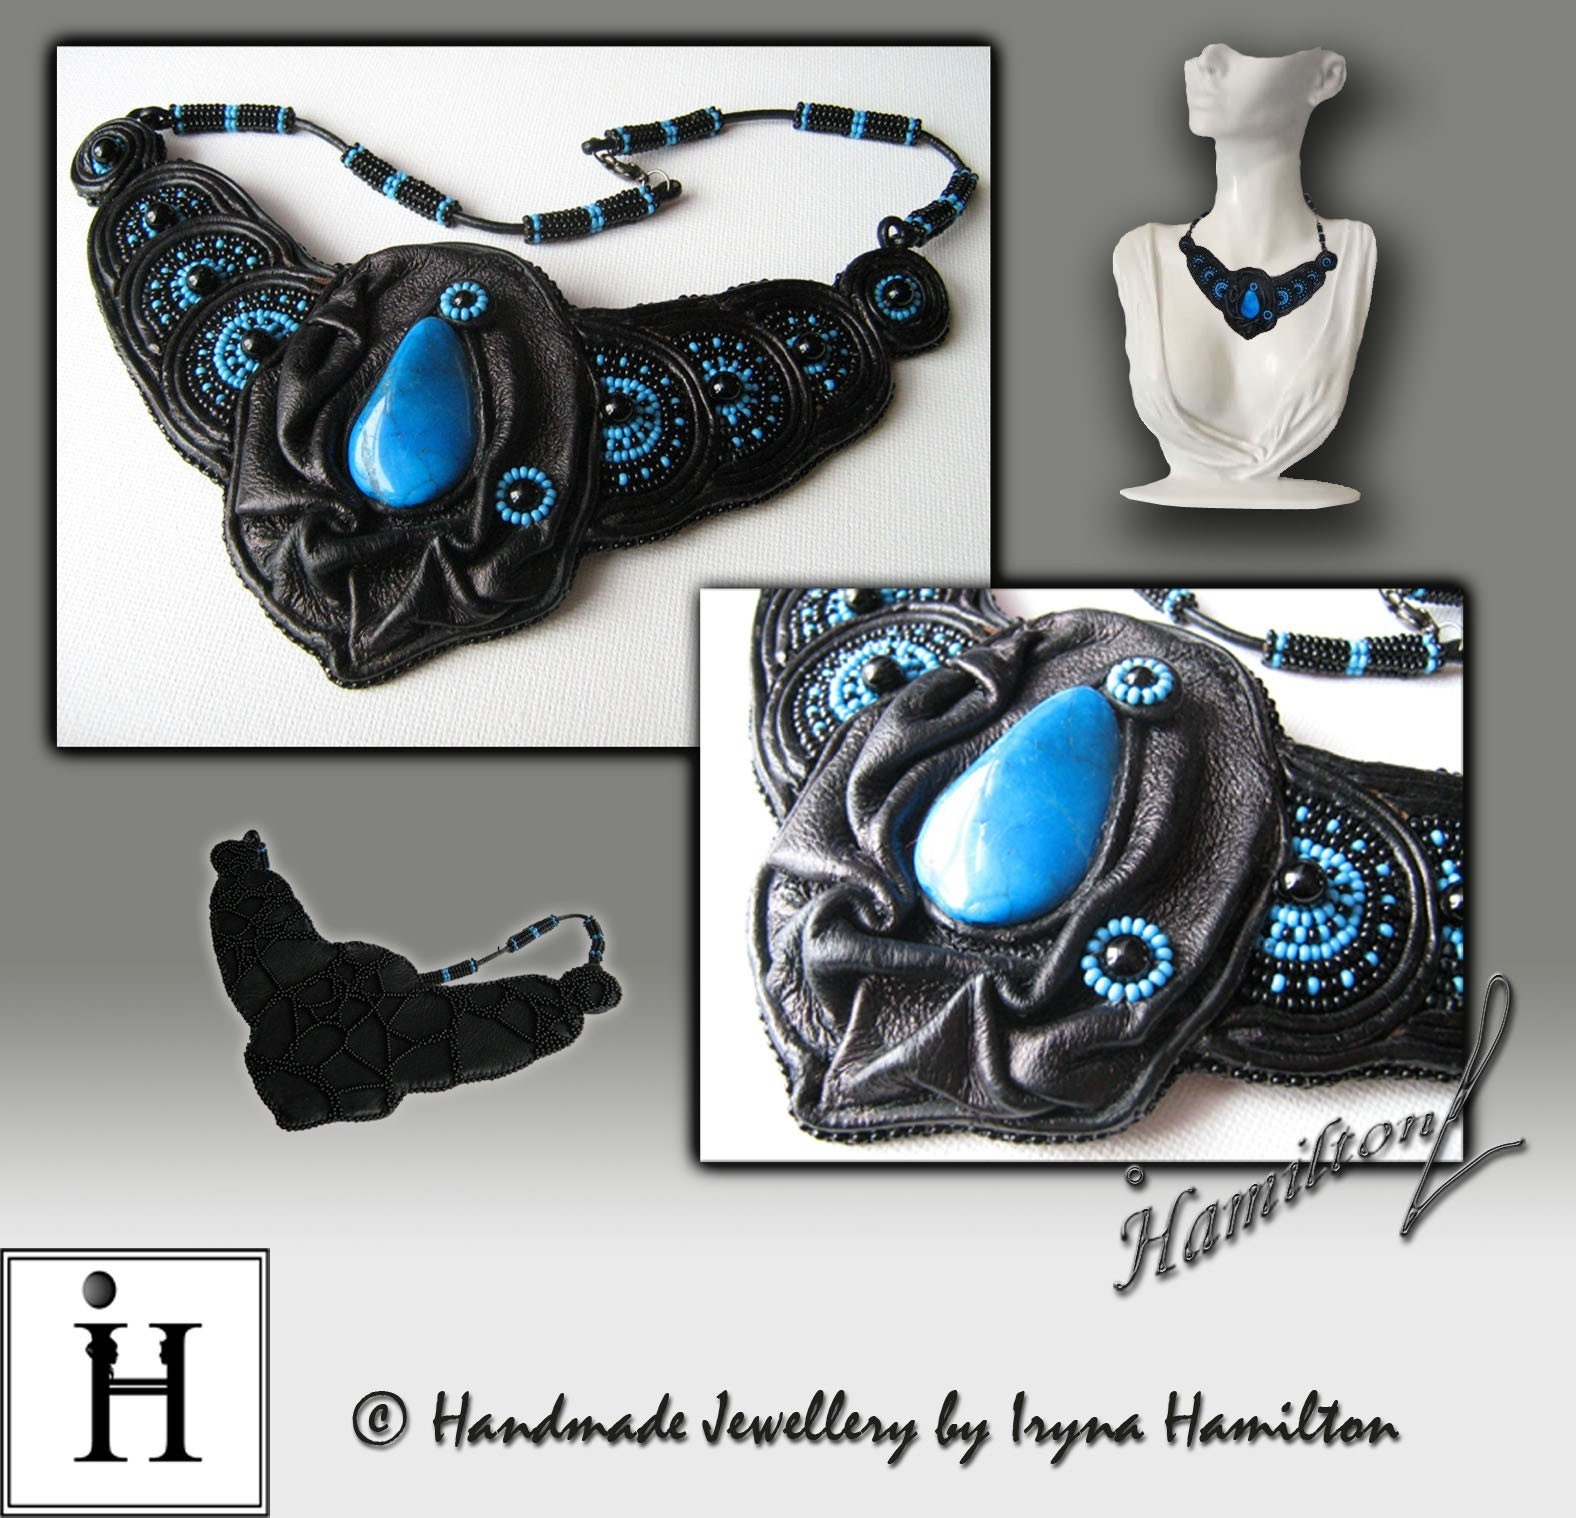 OOAK Leather Queen designer necklace by Iryna at ArtBeadwork from etsy.com